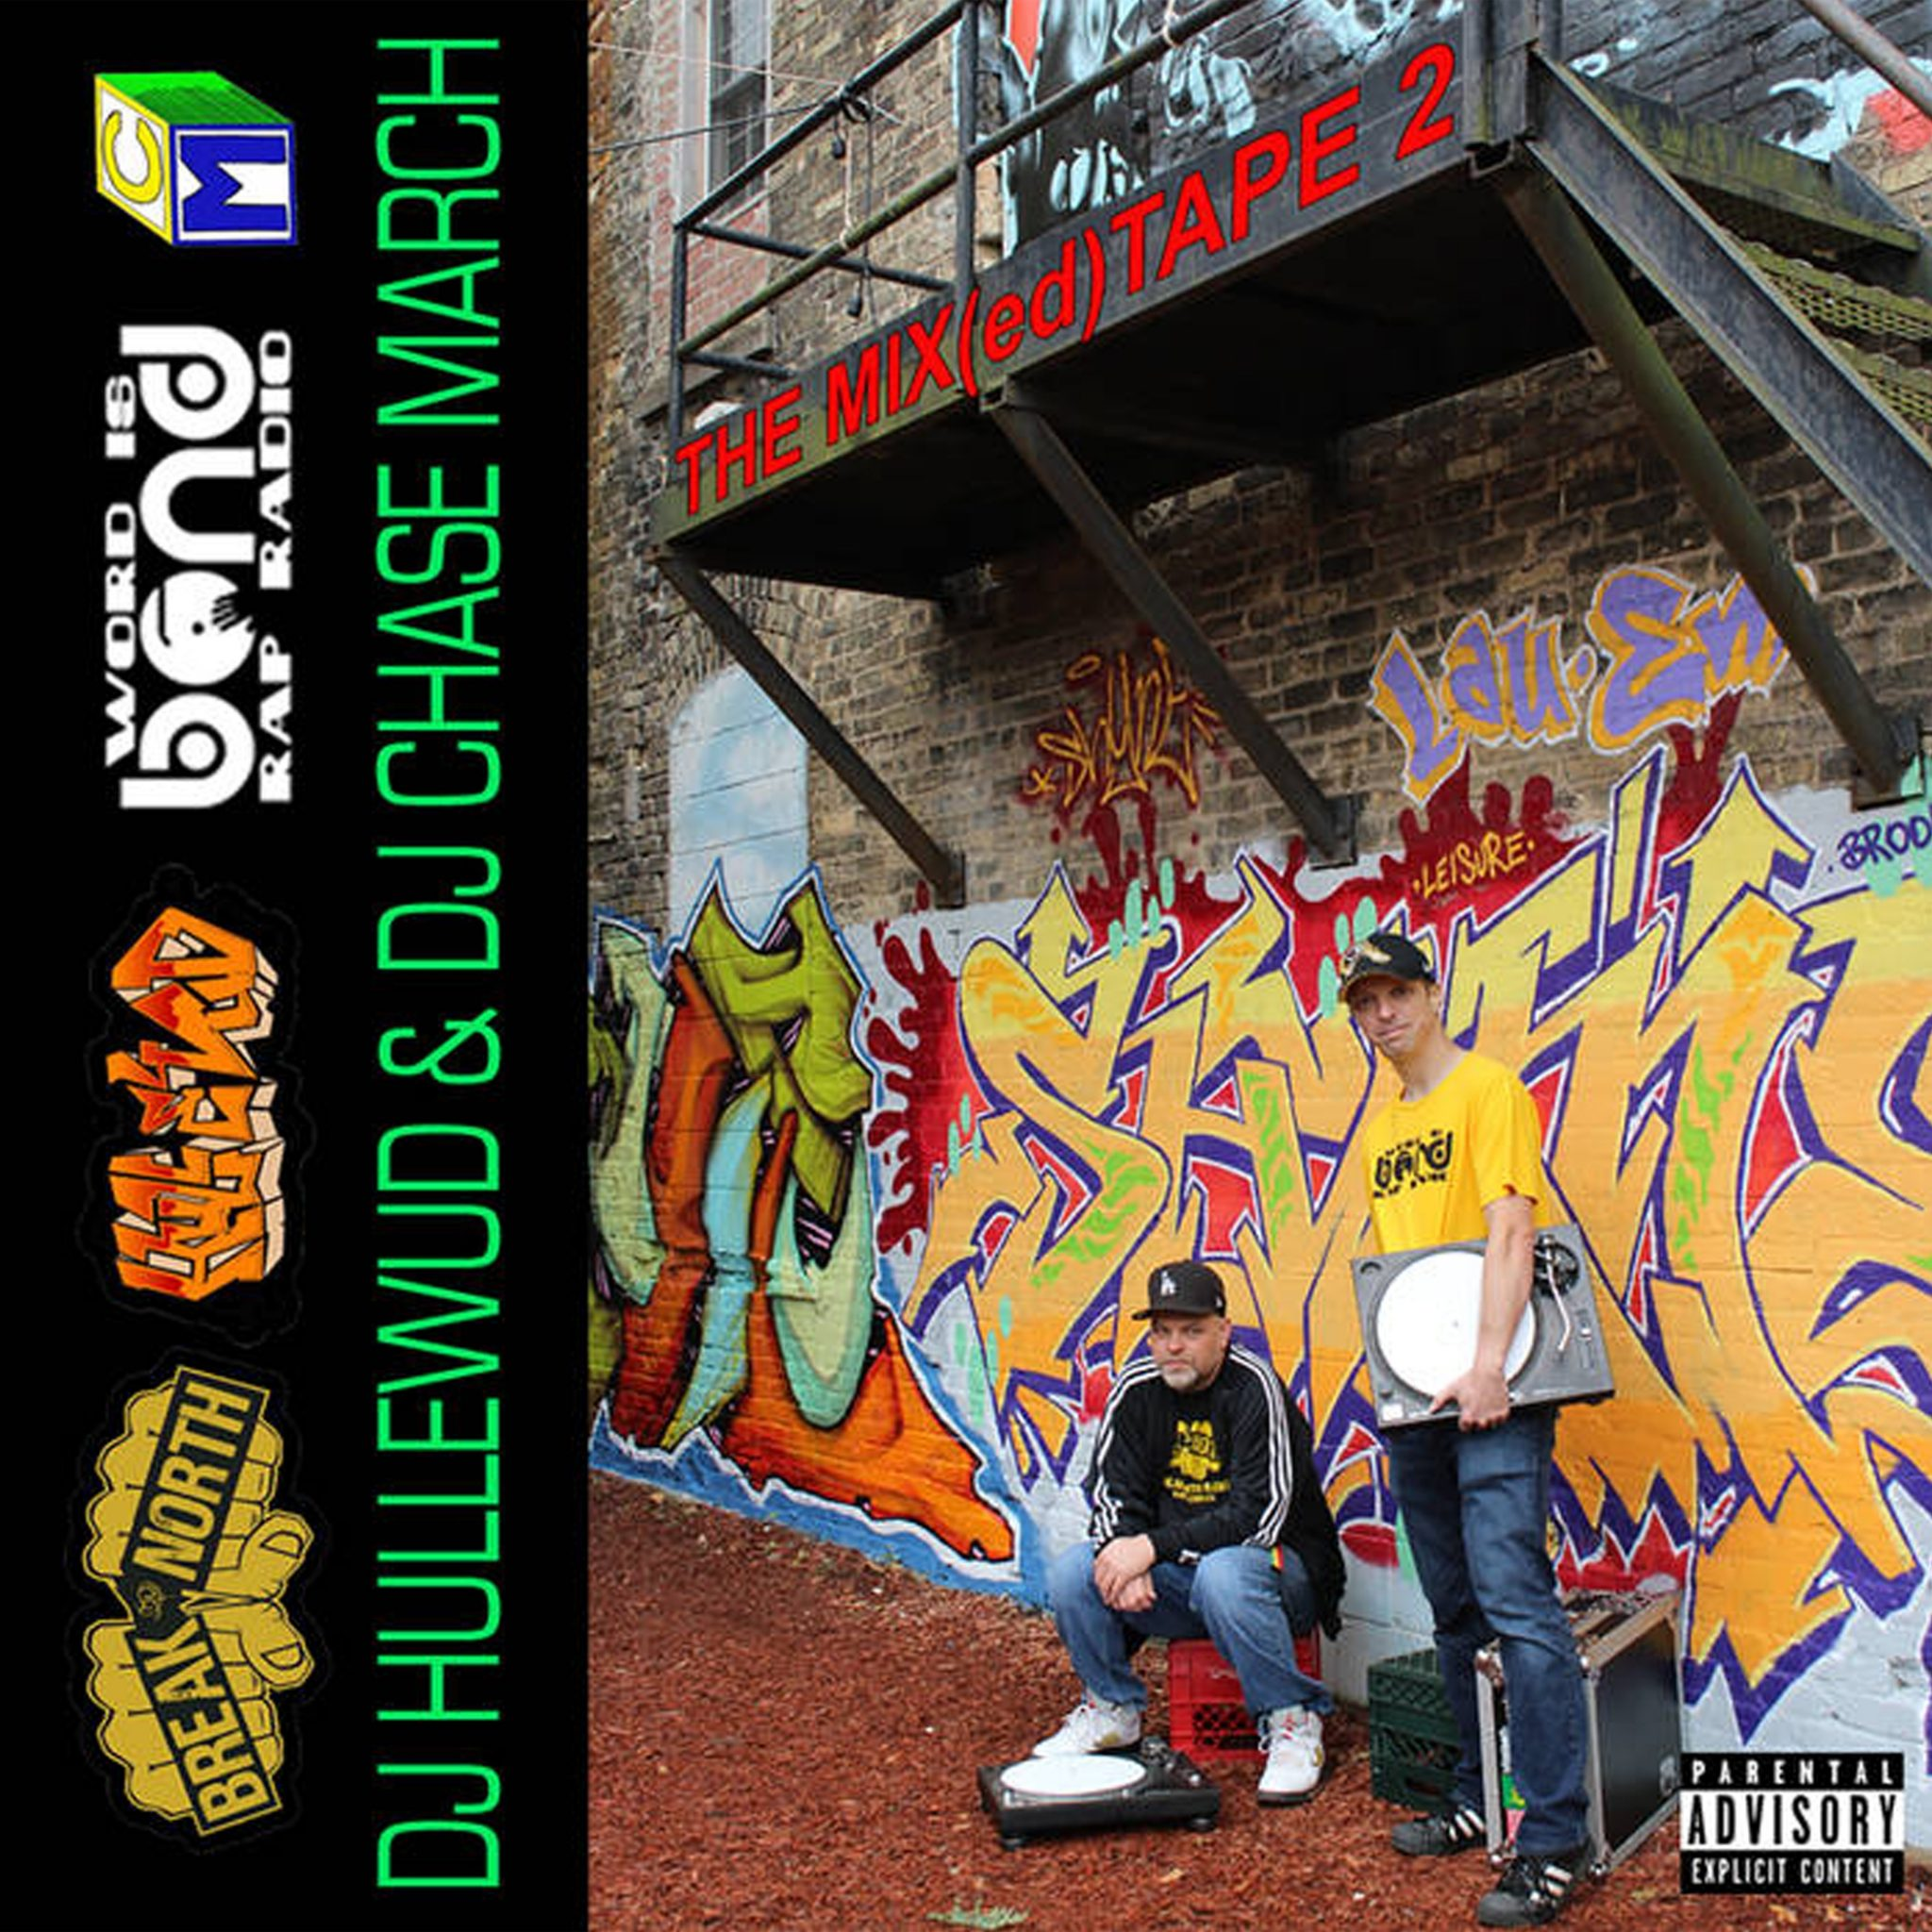 DJs Hullewud and Chase March are back with a mixtape featuring some of London's hip-hop finest.